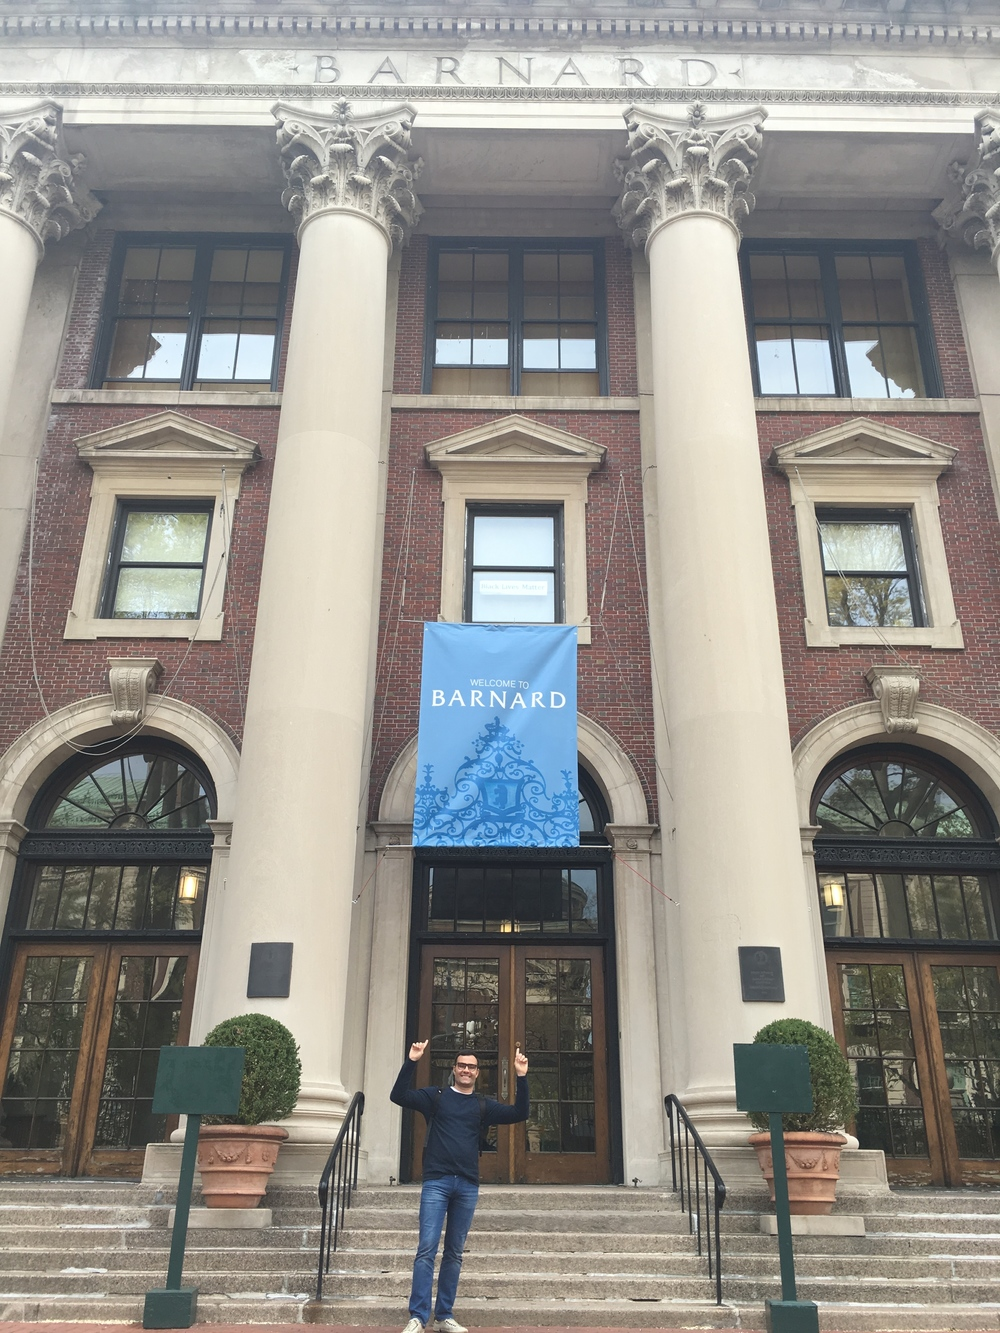 Murilo breaks into Barnard's all-girls' campus!